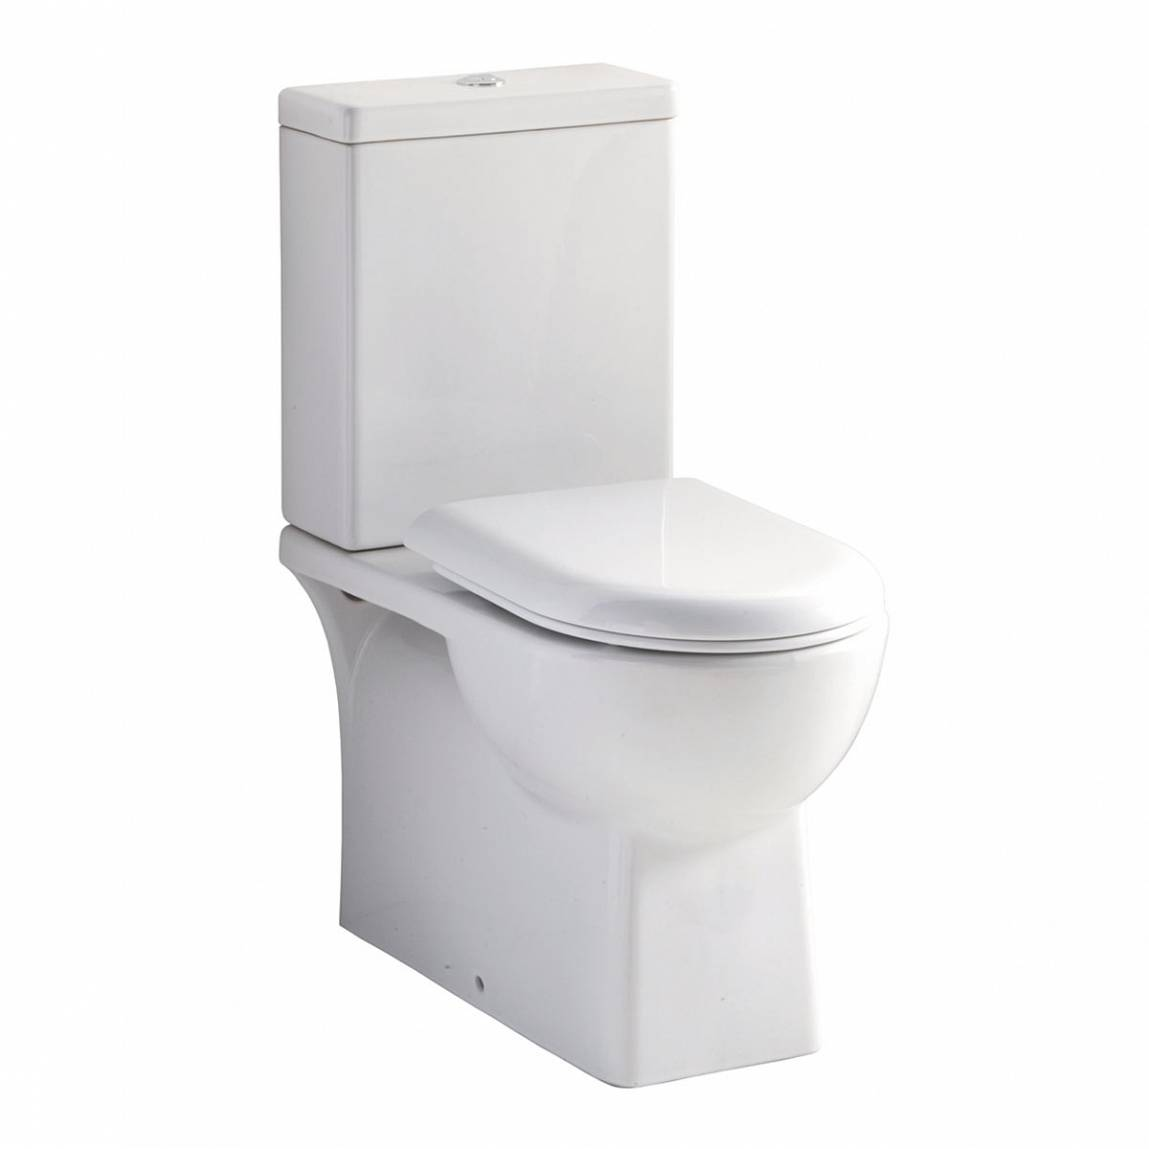 Image of Brent Close Coupled Toilet inc Seat